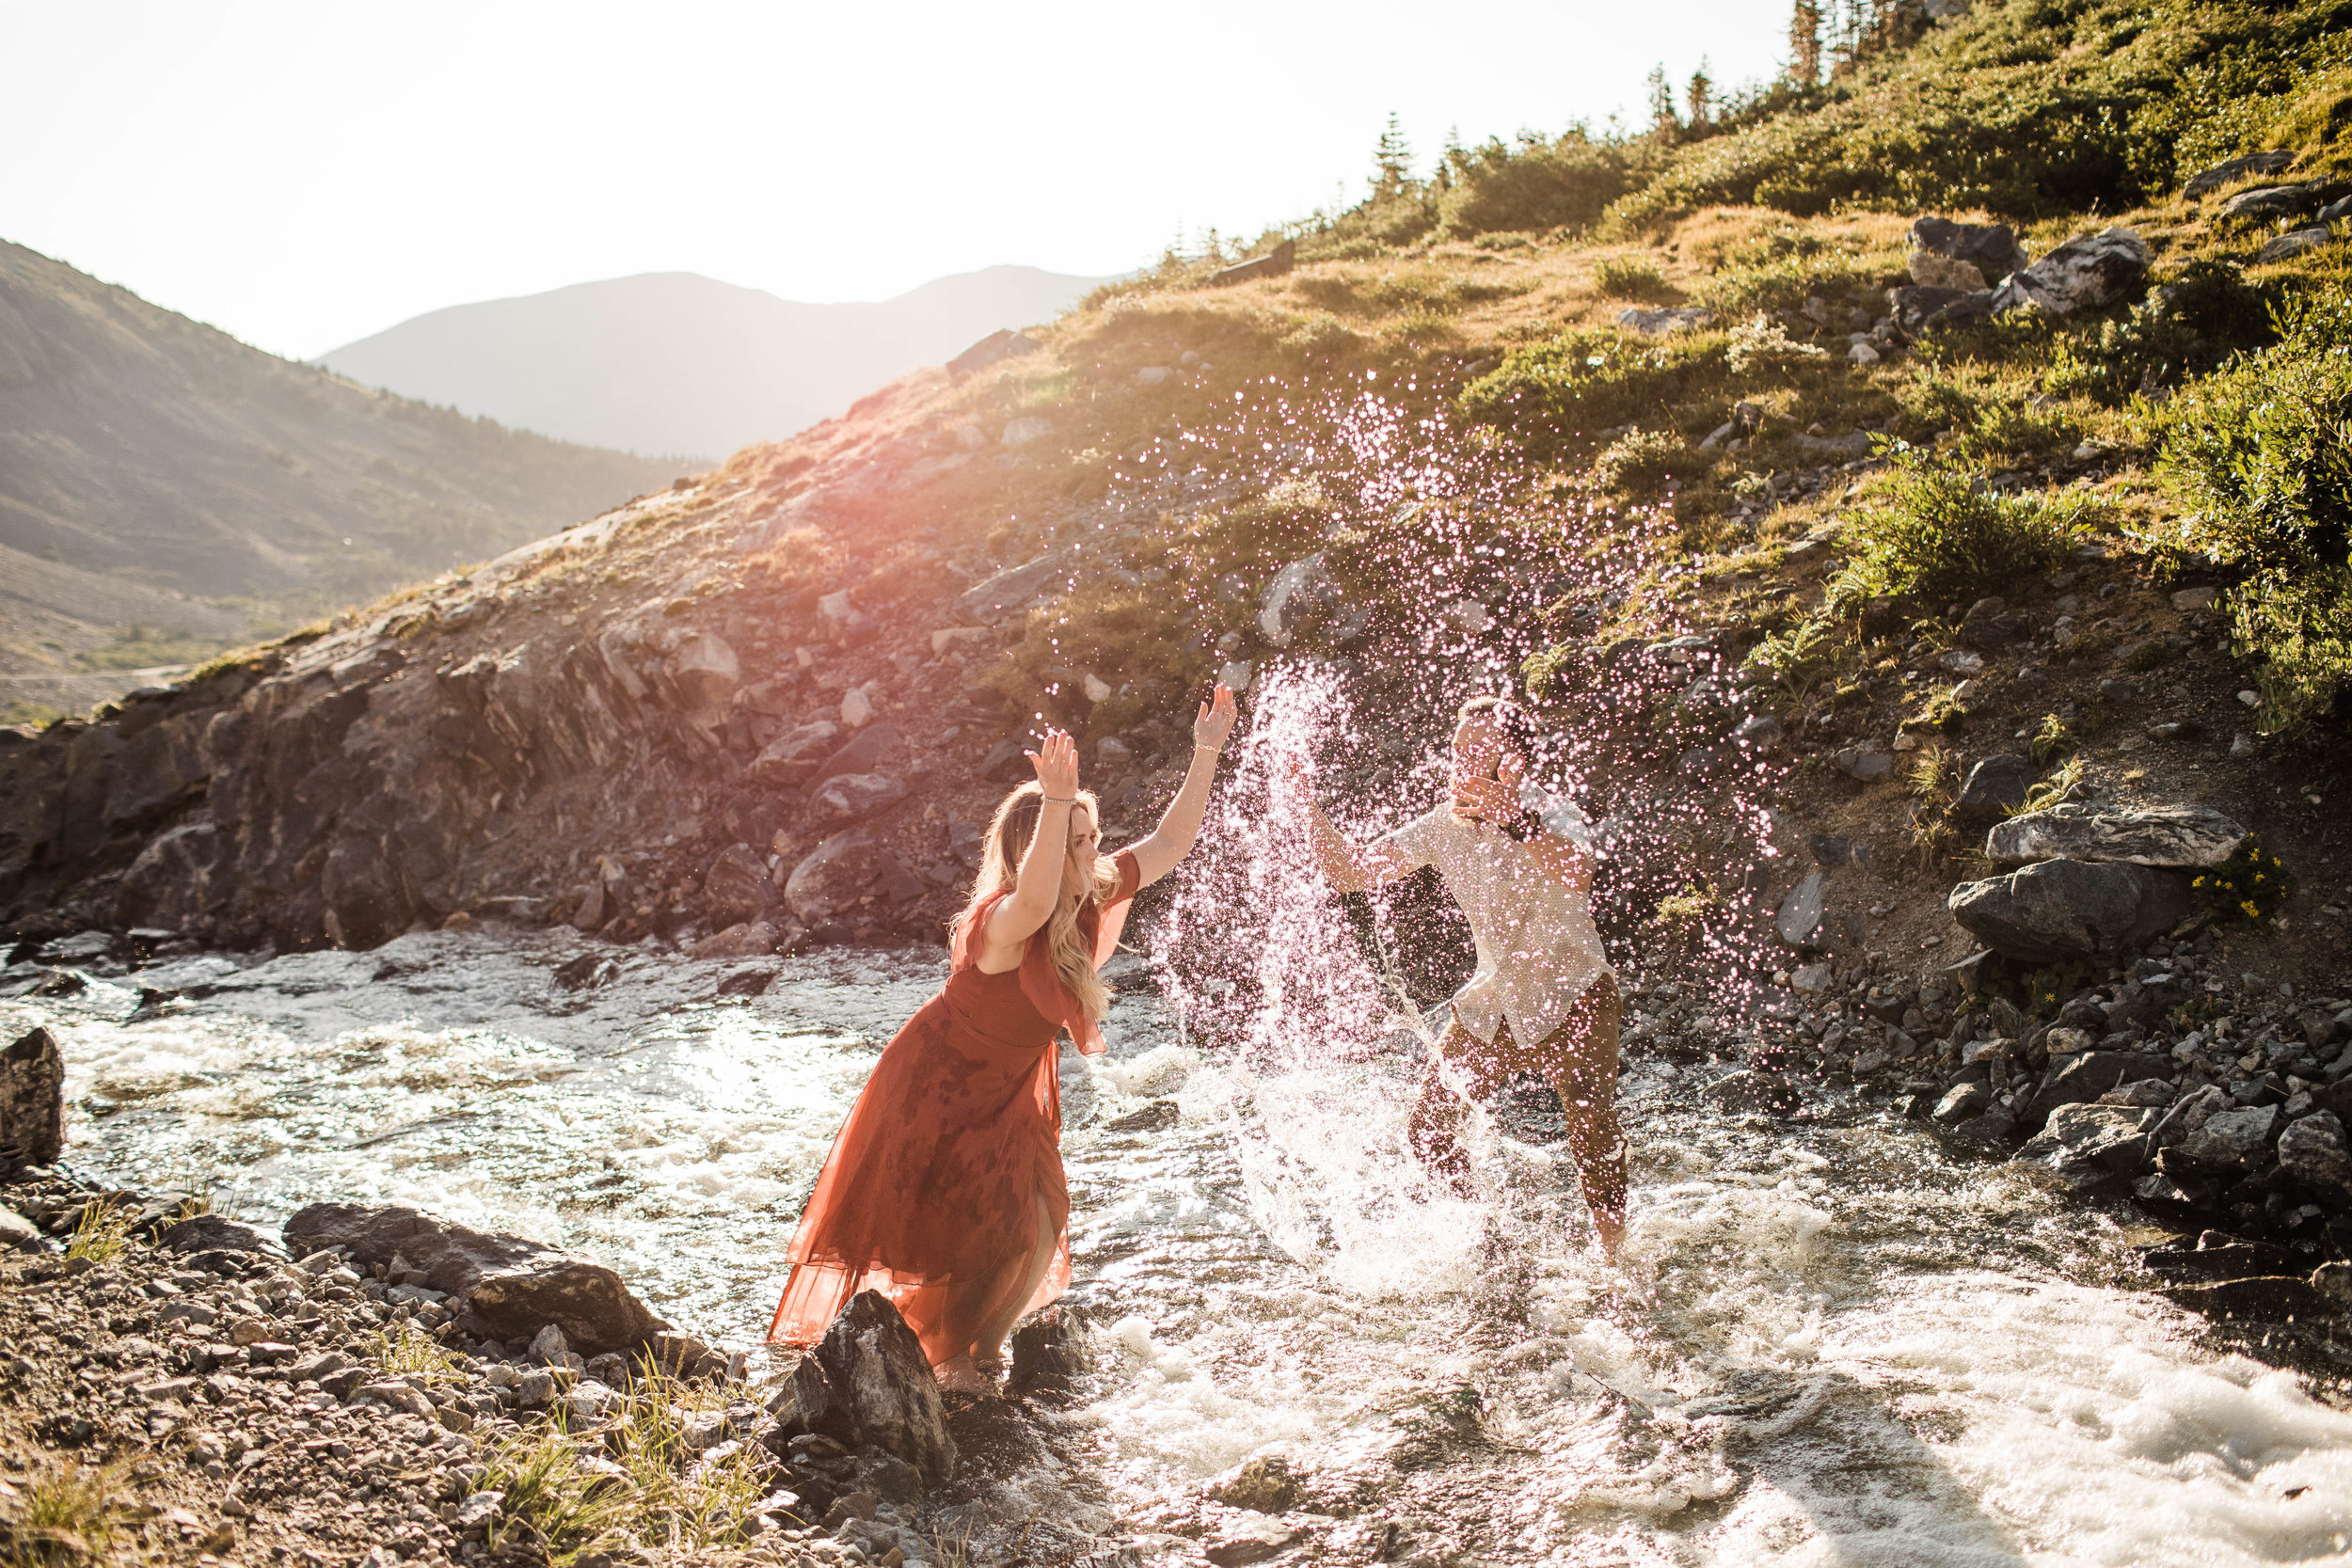 eloping couple splashing around in a creek during their adventurous engagement photos in the mountains of Colorado | Breckenridge adventure weddings and elopements